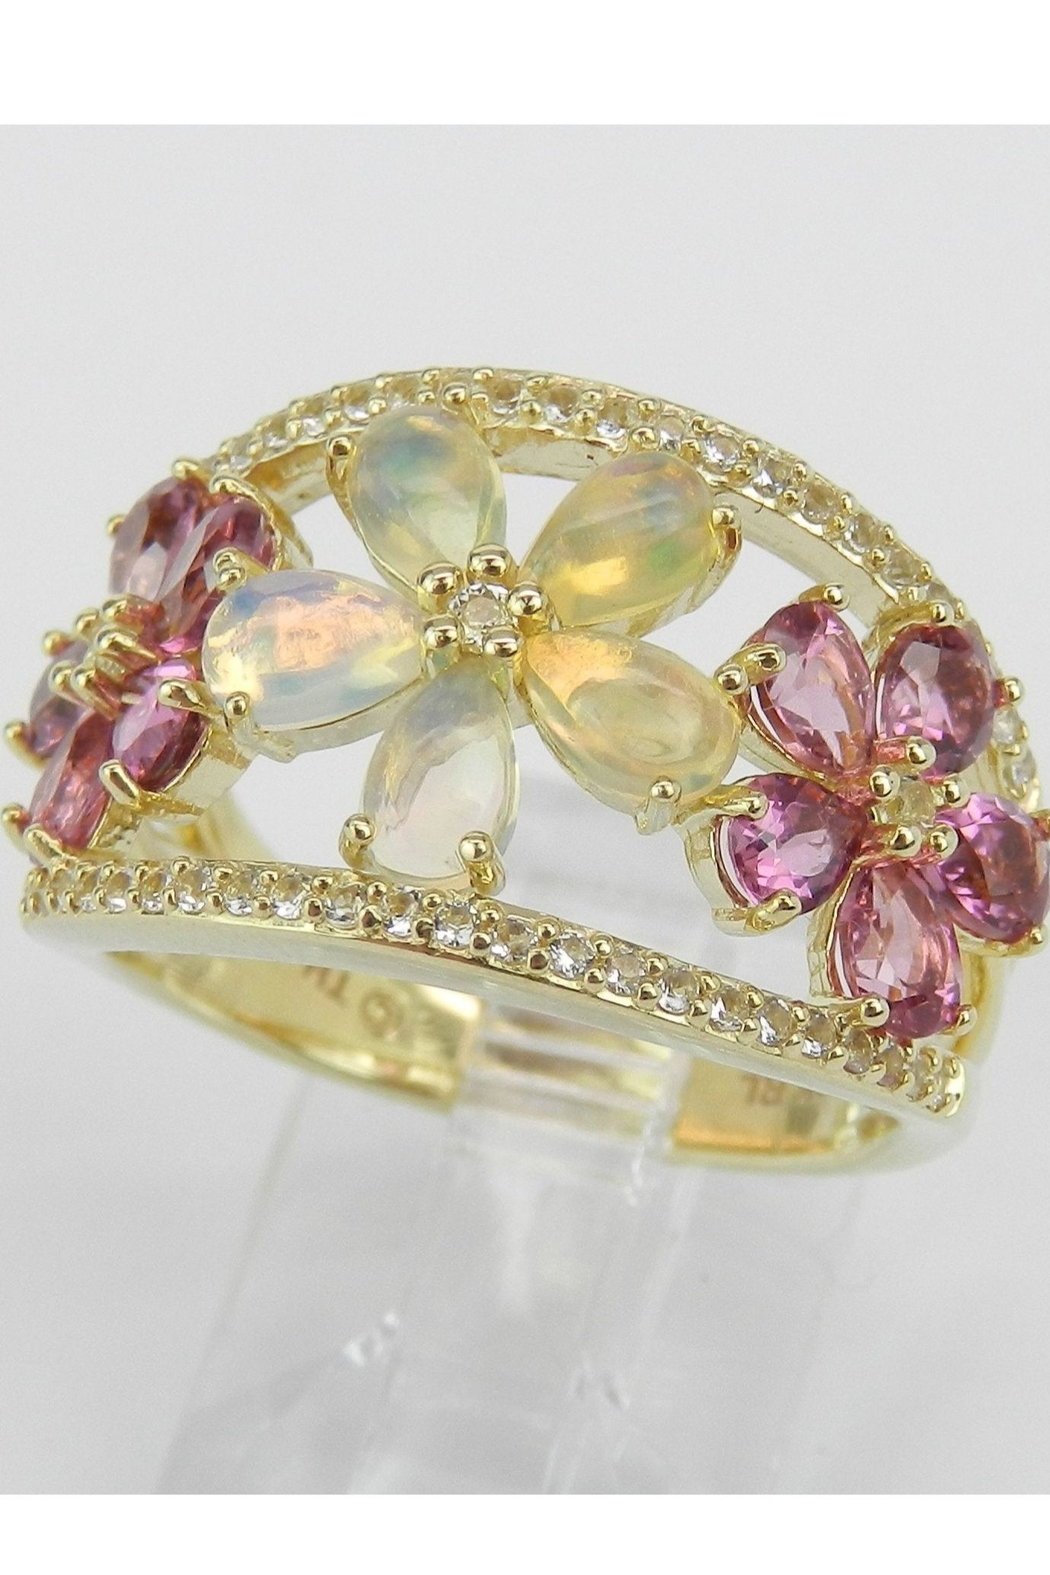 Margolin & Co Yellow Gold Opal Pink Tourmaline White Sapphire Flower Cluster Cocktail Ring Size 7 October Gem - Side Cropped Image